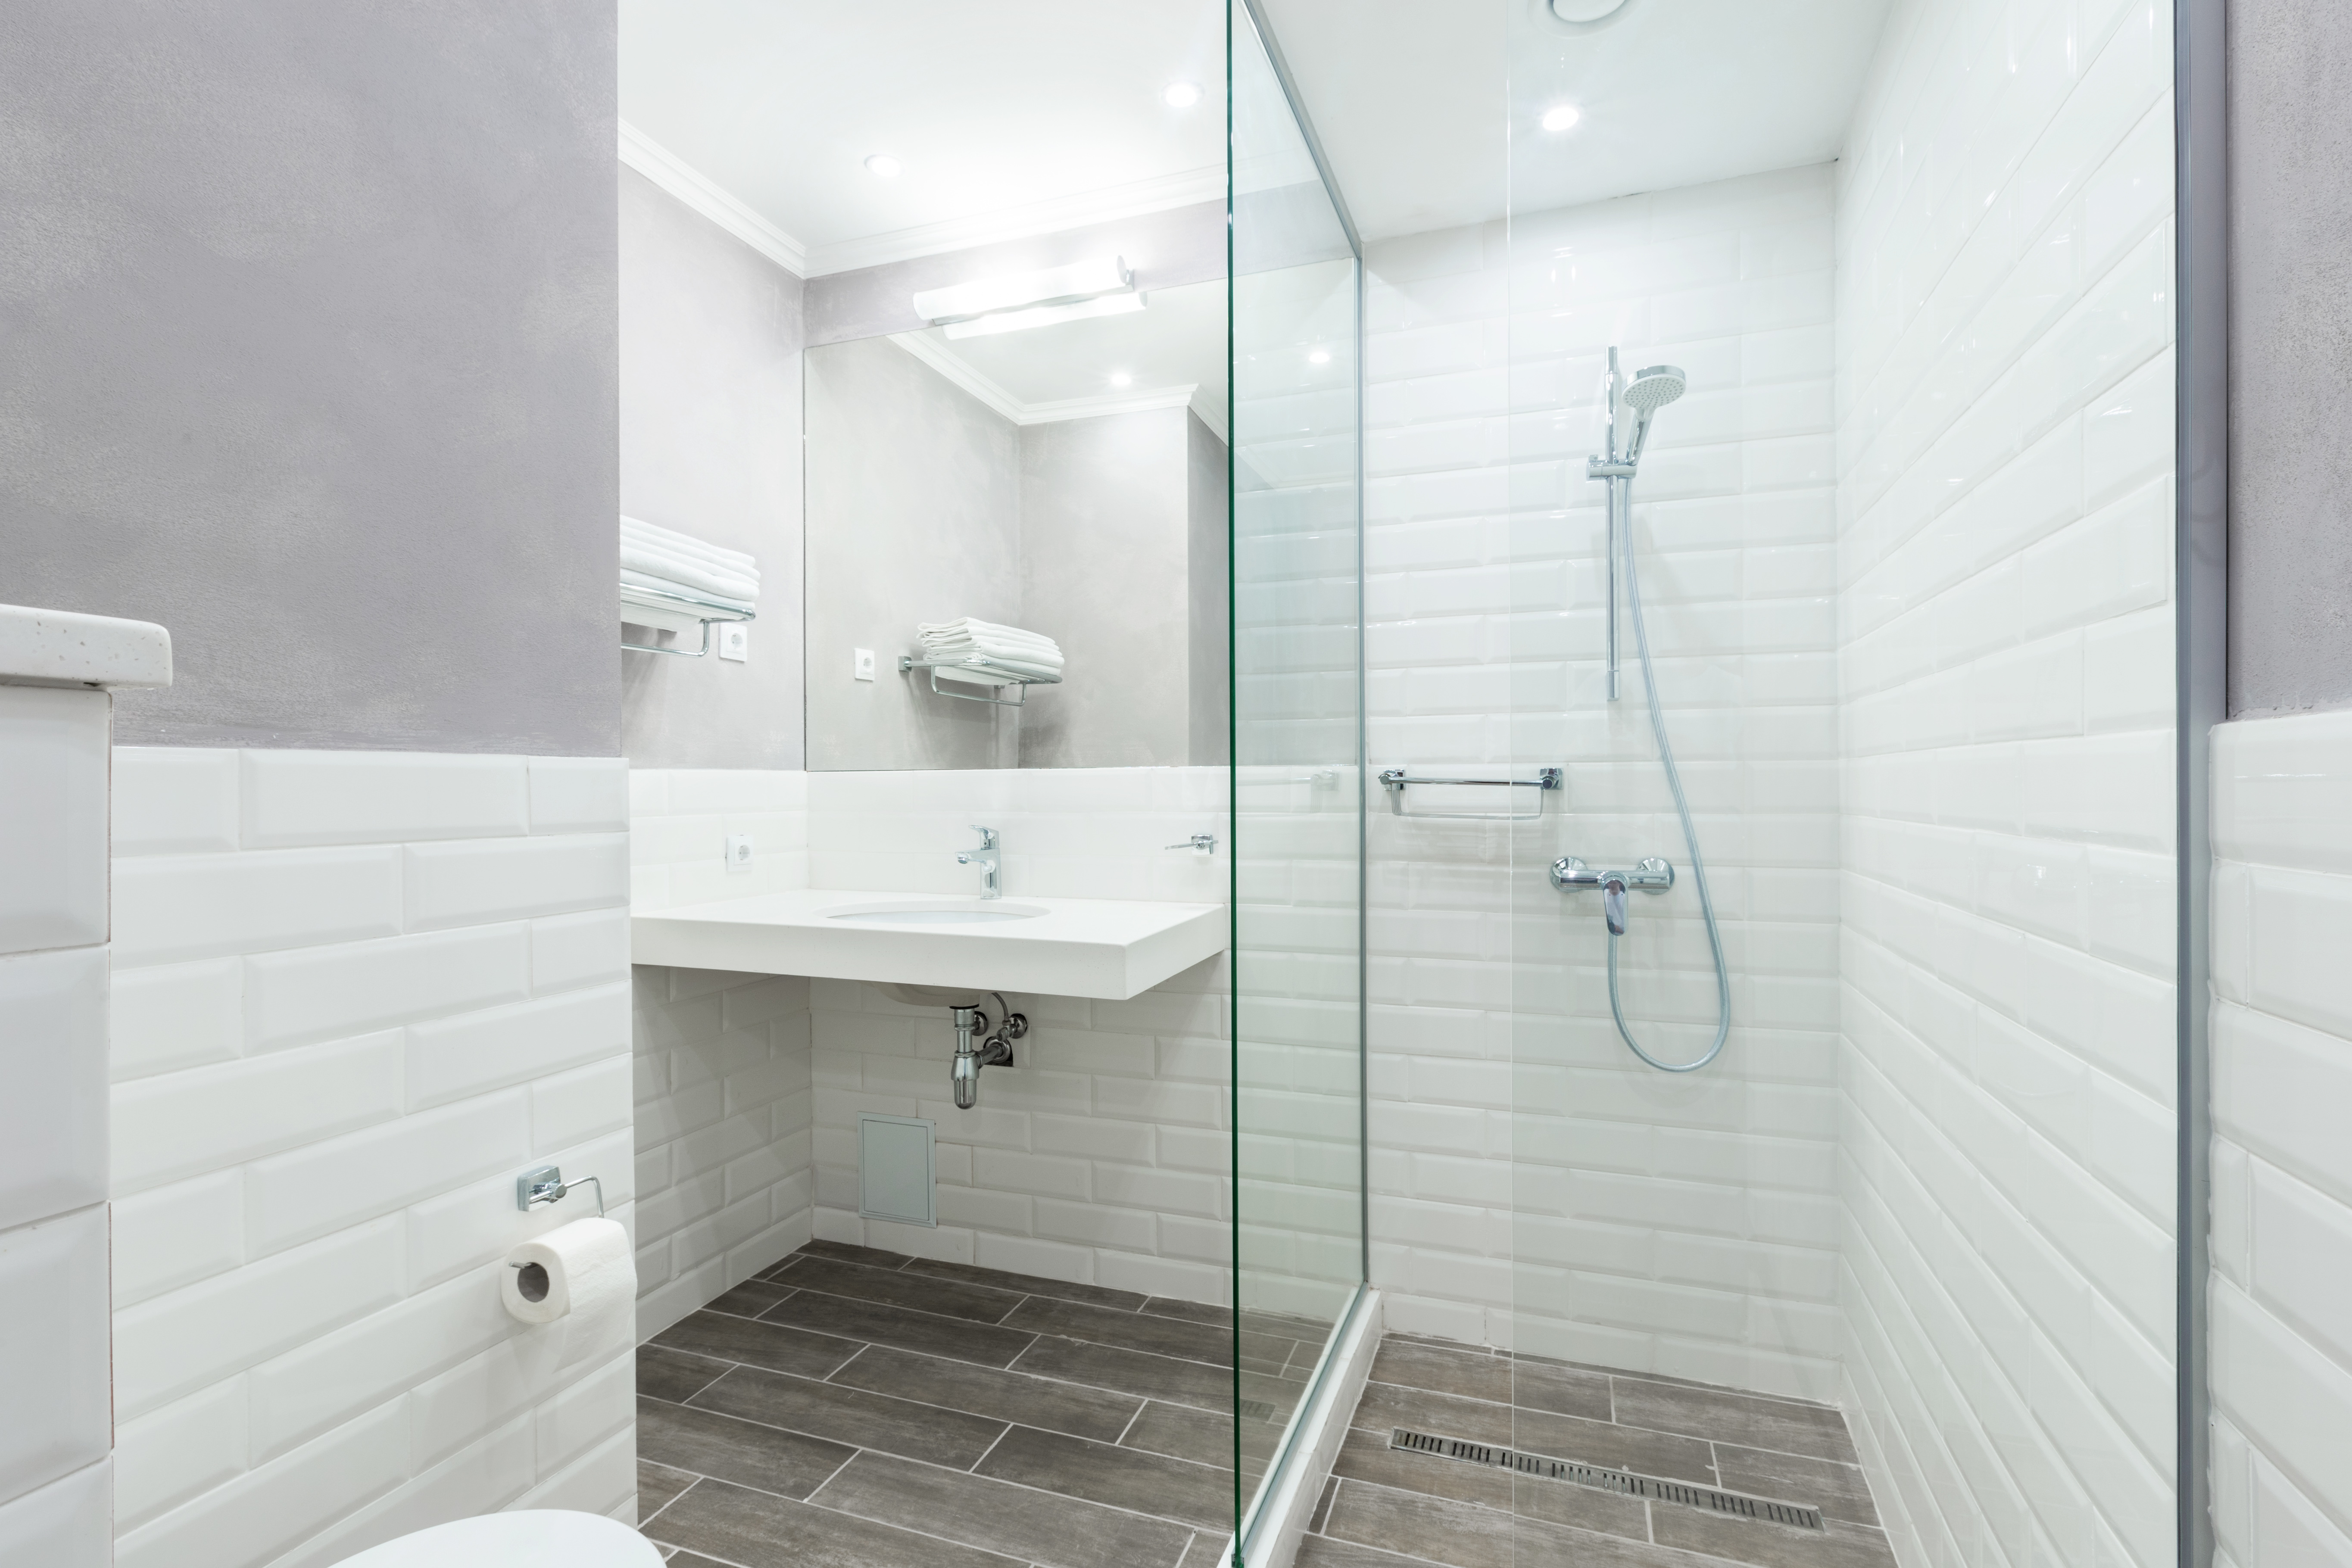 A wet room is ideal if you have a small bathroom or if getting into and out of the bathtub is difficult. It's also a beautiful trend in bathroom designs.